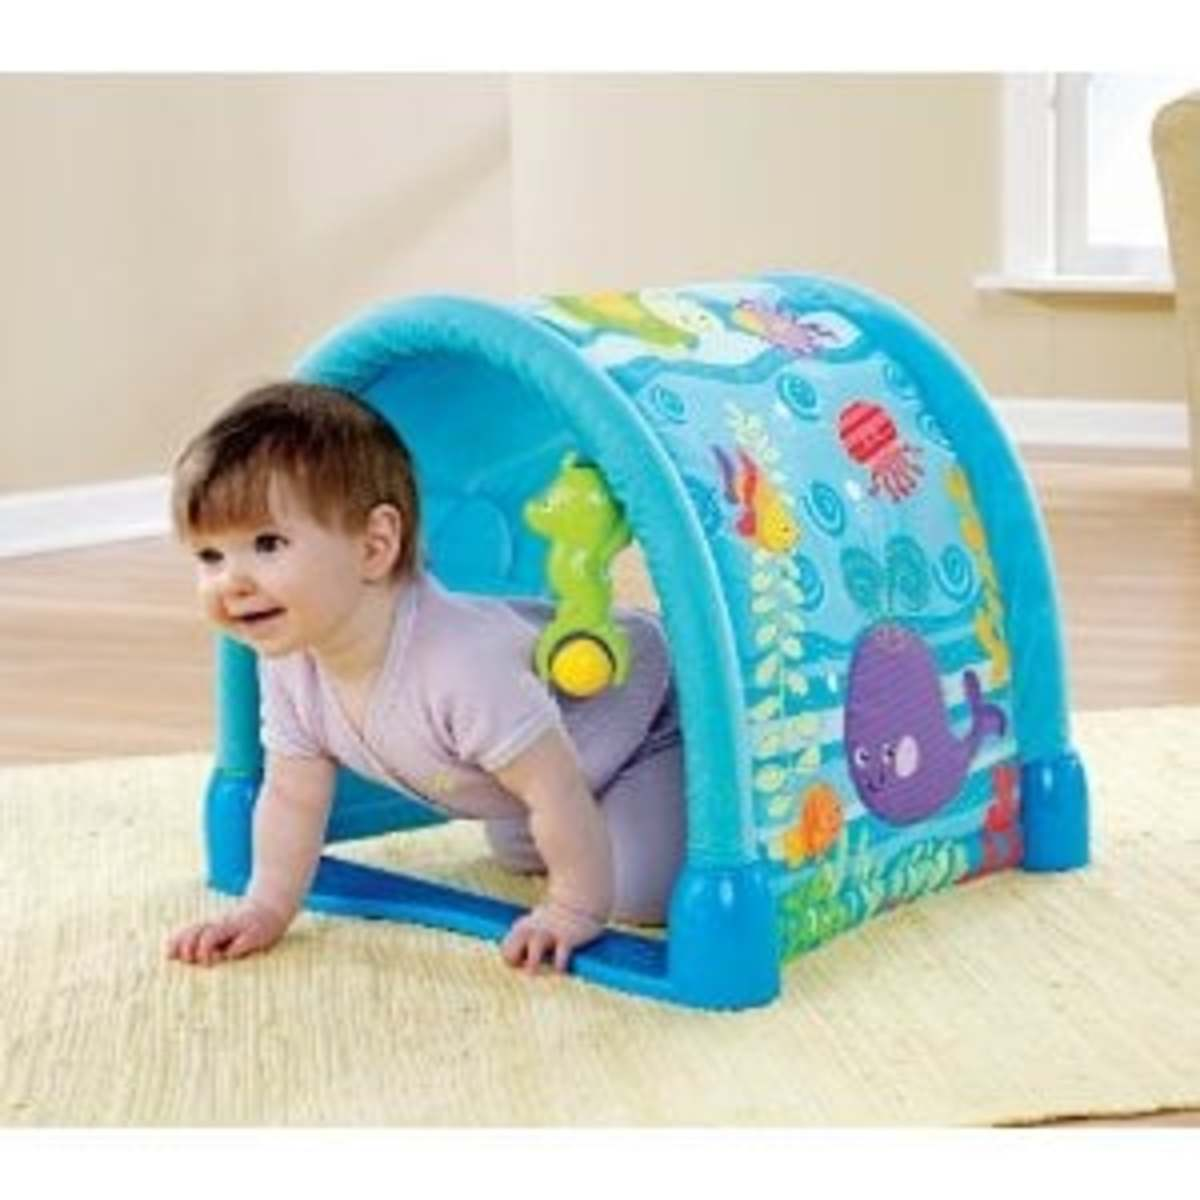 A fun toy for babies who can crawl